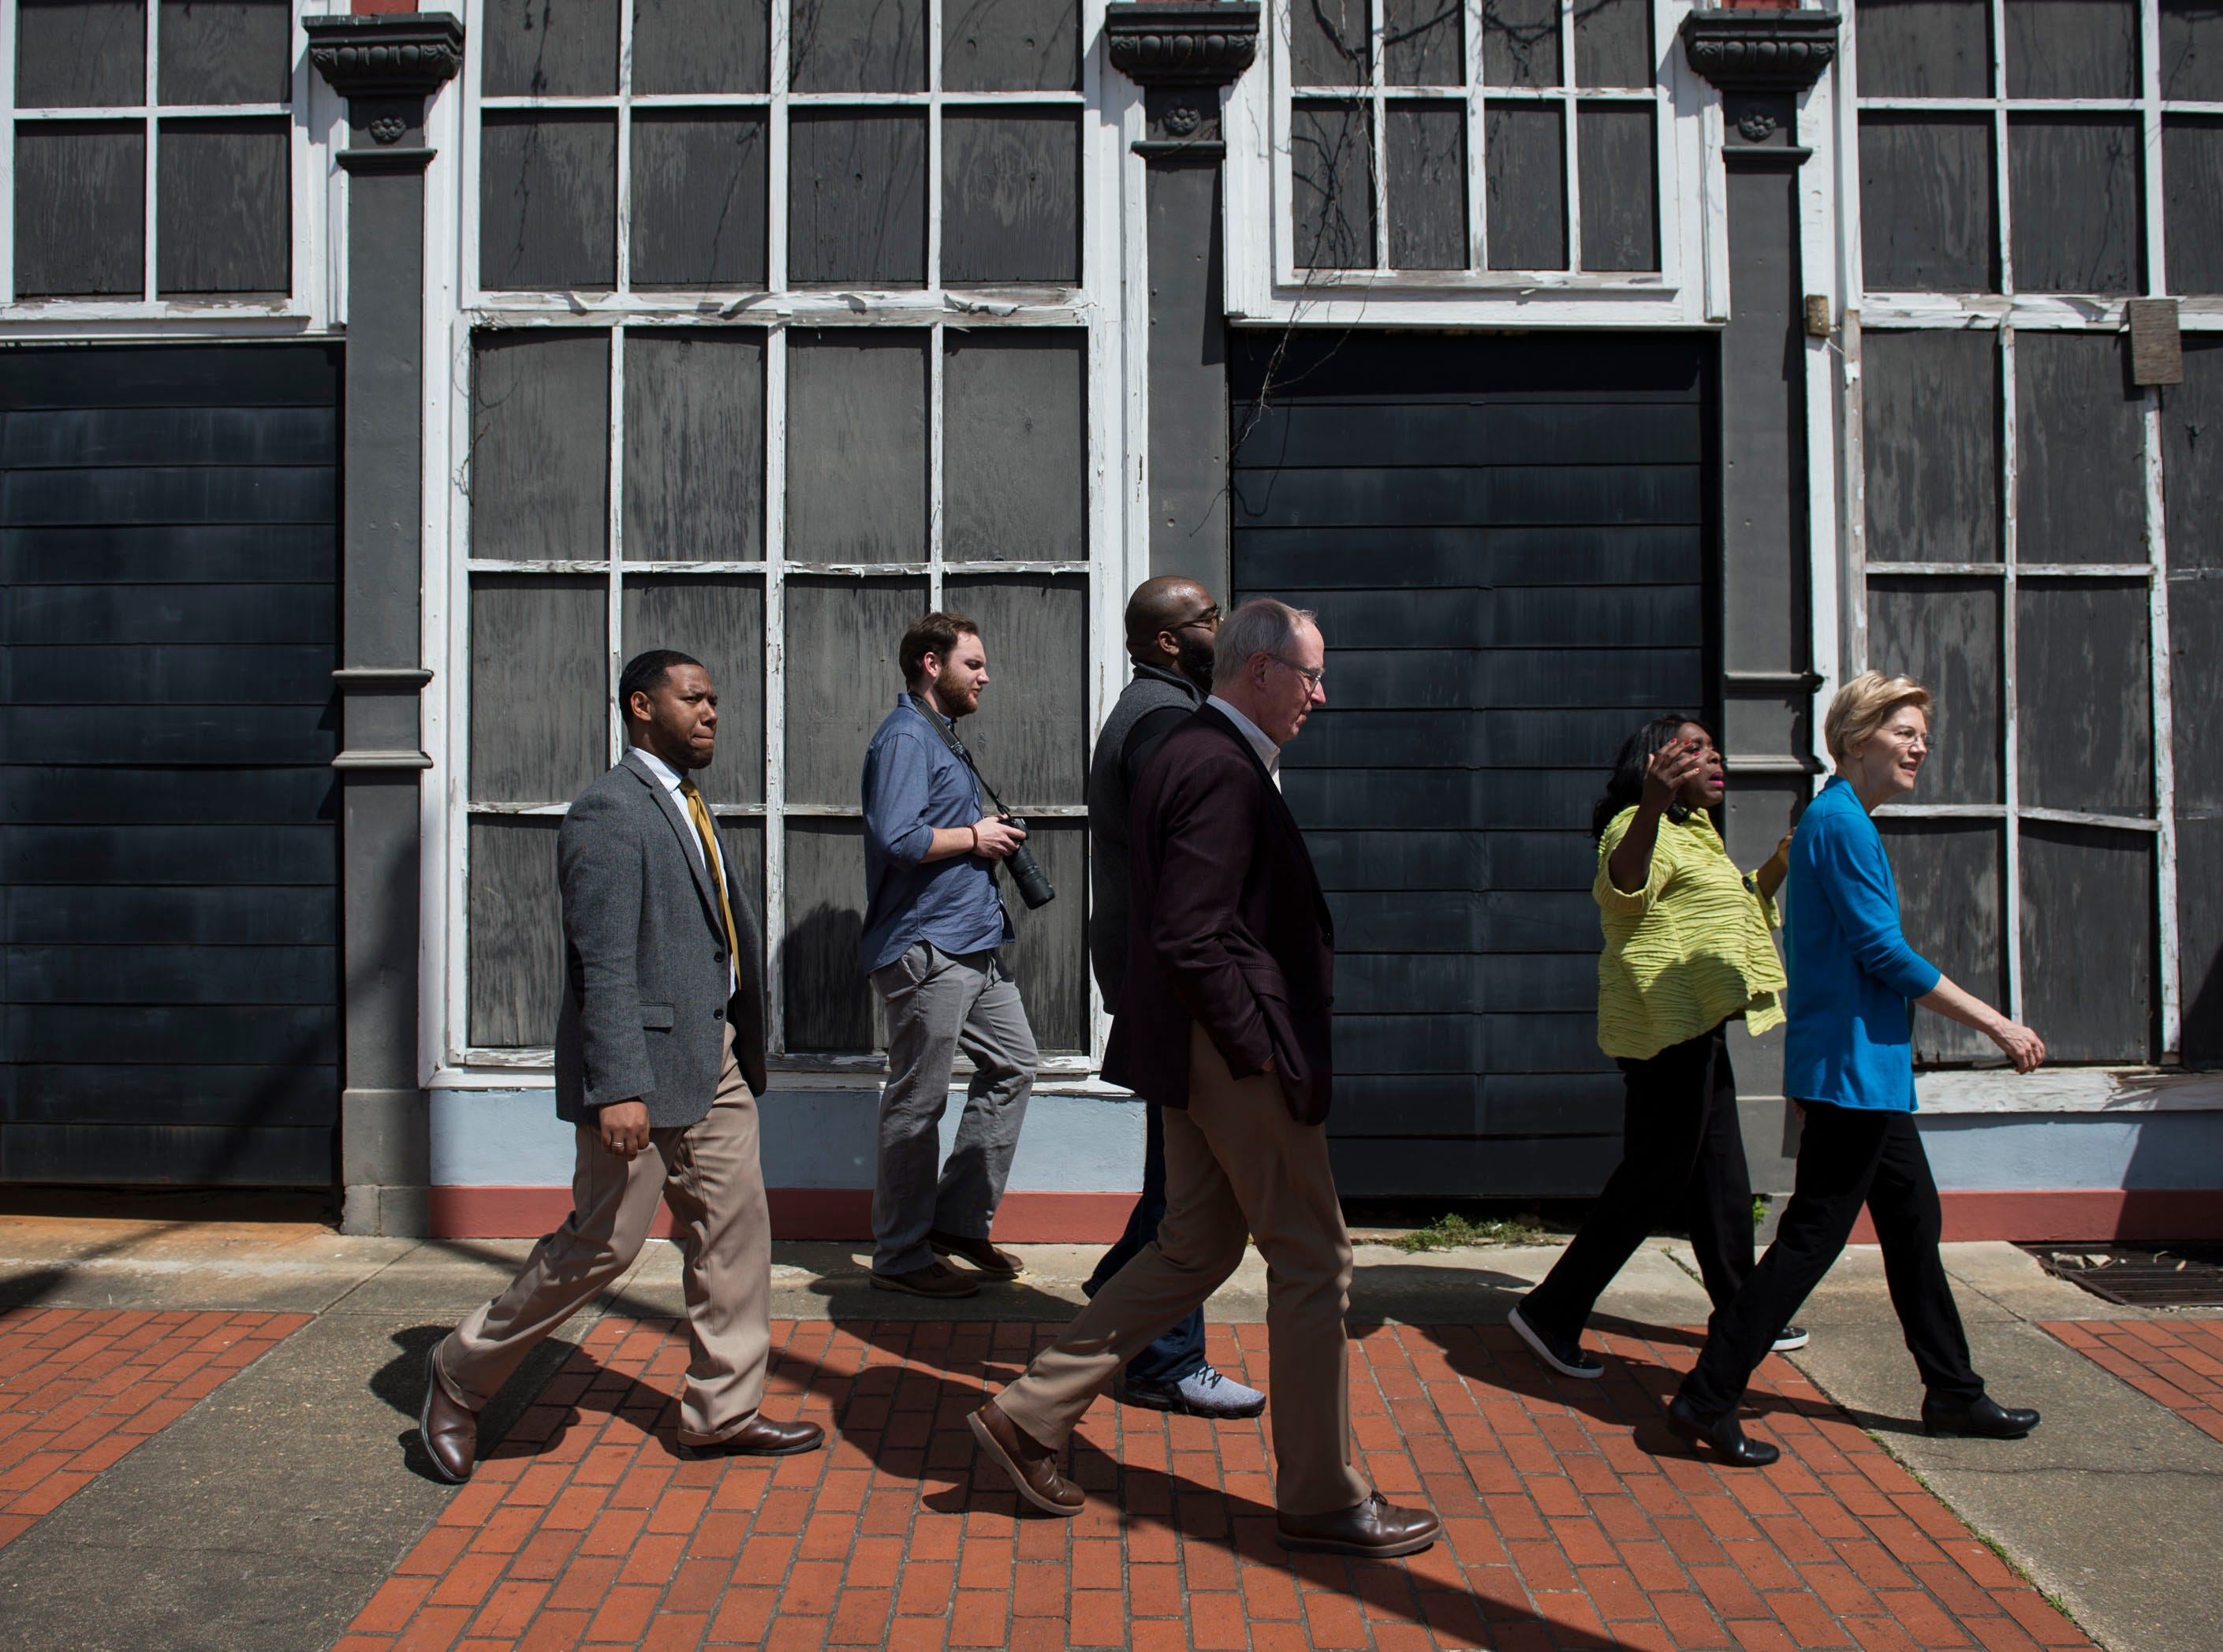 Sen. Elizabeth Warren, right, and Rep. Terri Sewell walk the streets of downtown Selma, Ala., on Tuesday, March 19, 2019.